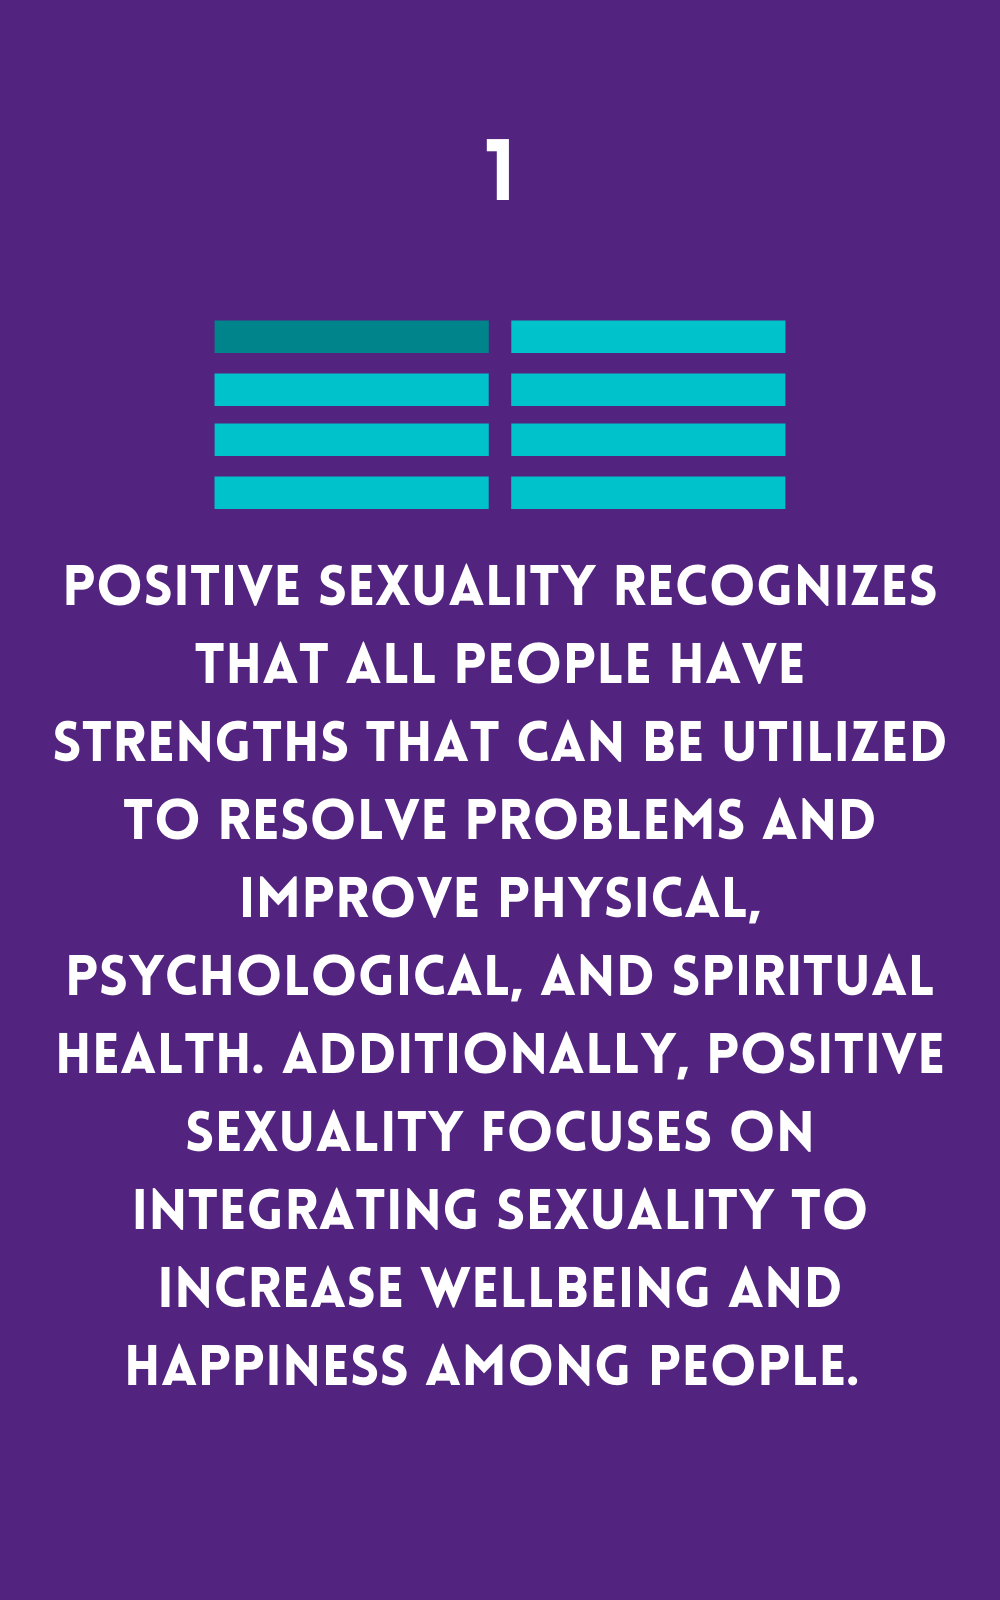 All people have strengths and wellbeing and happiness should be supported